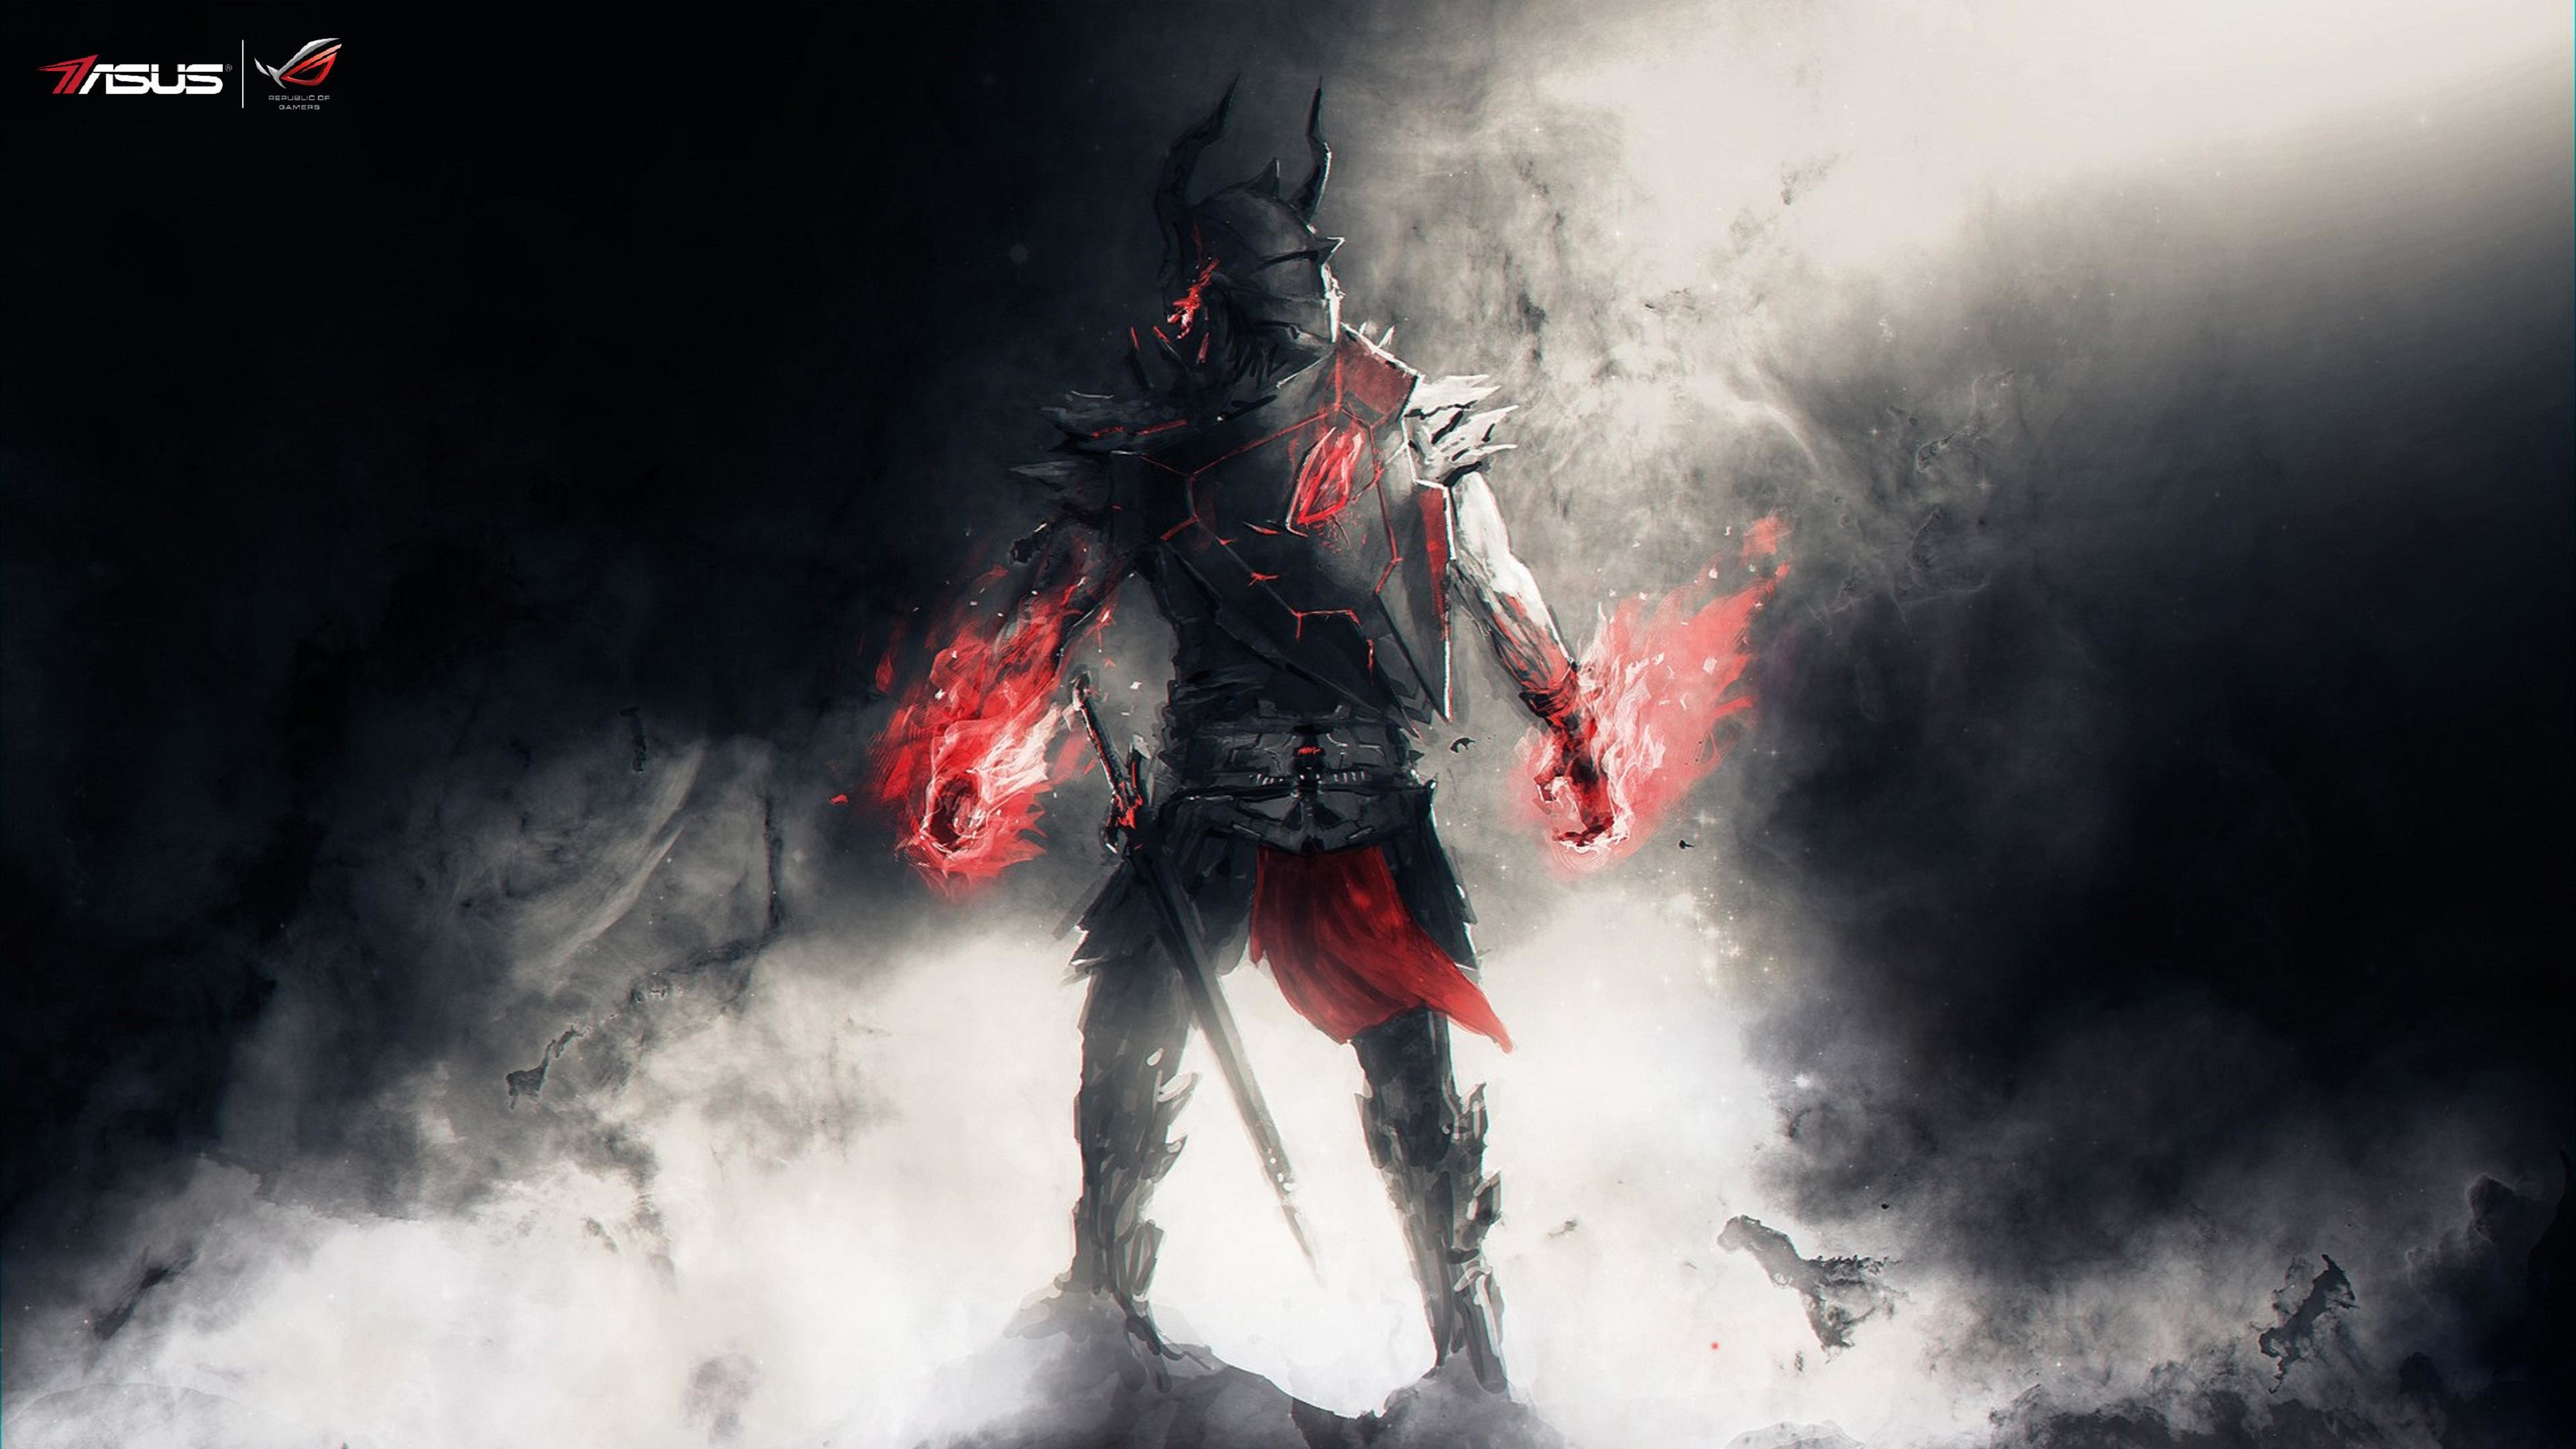 Best 25+ Gaming wallpapers hd ideas on Pinterest | Gaming wallpapers,  Skyrim for xbox one and Fallout 3 codes